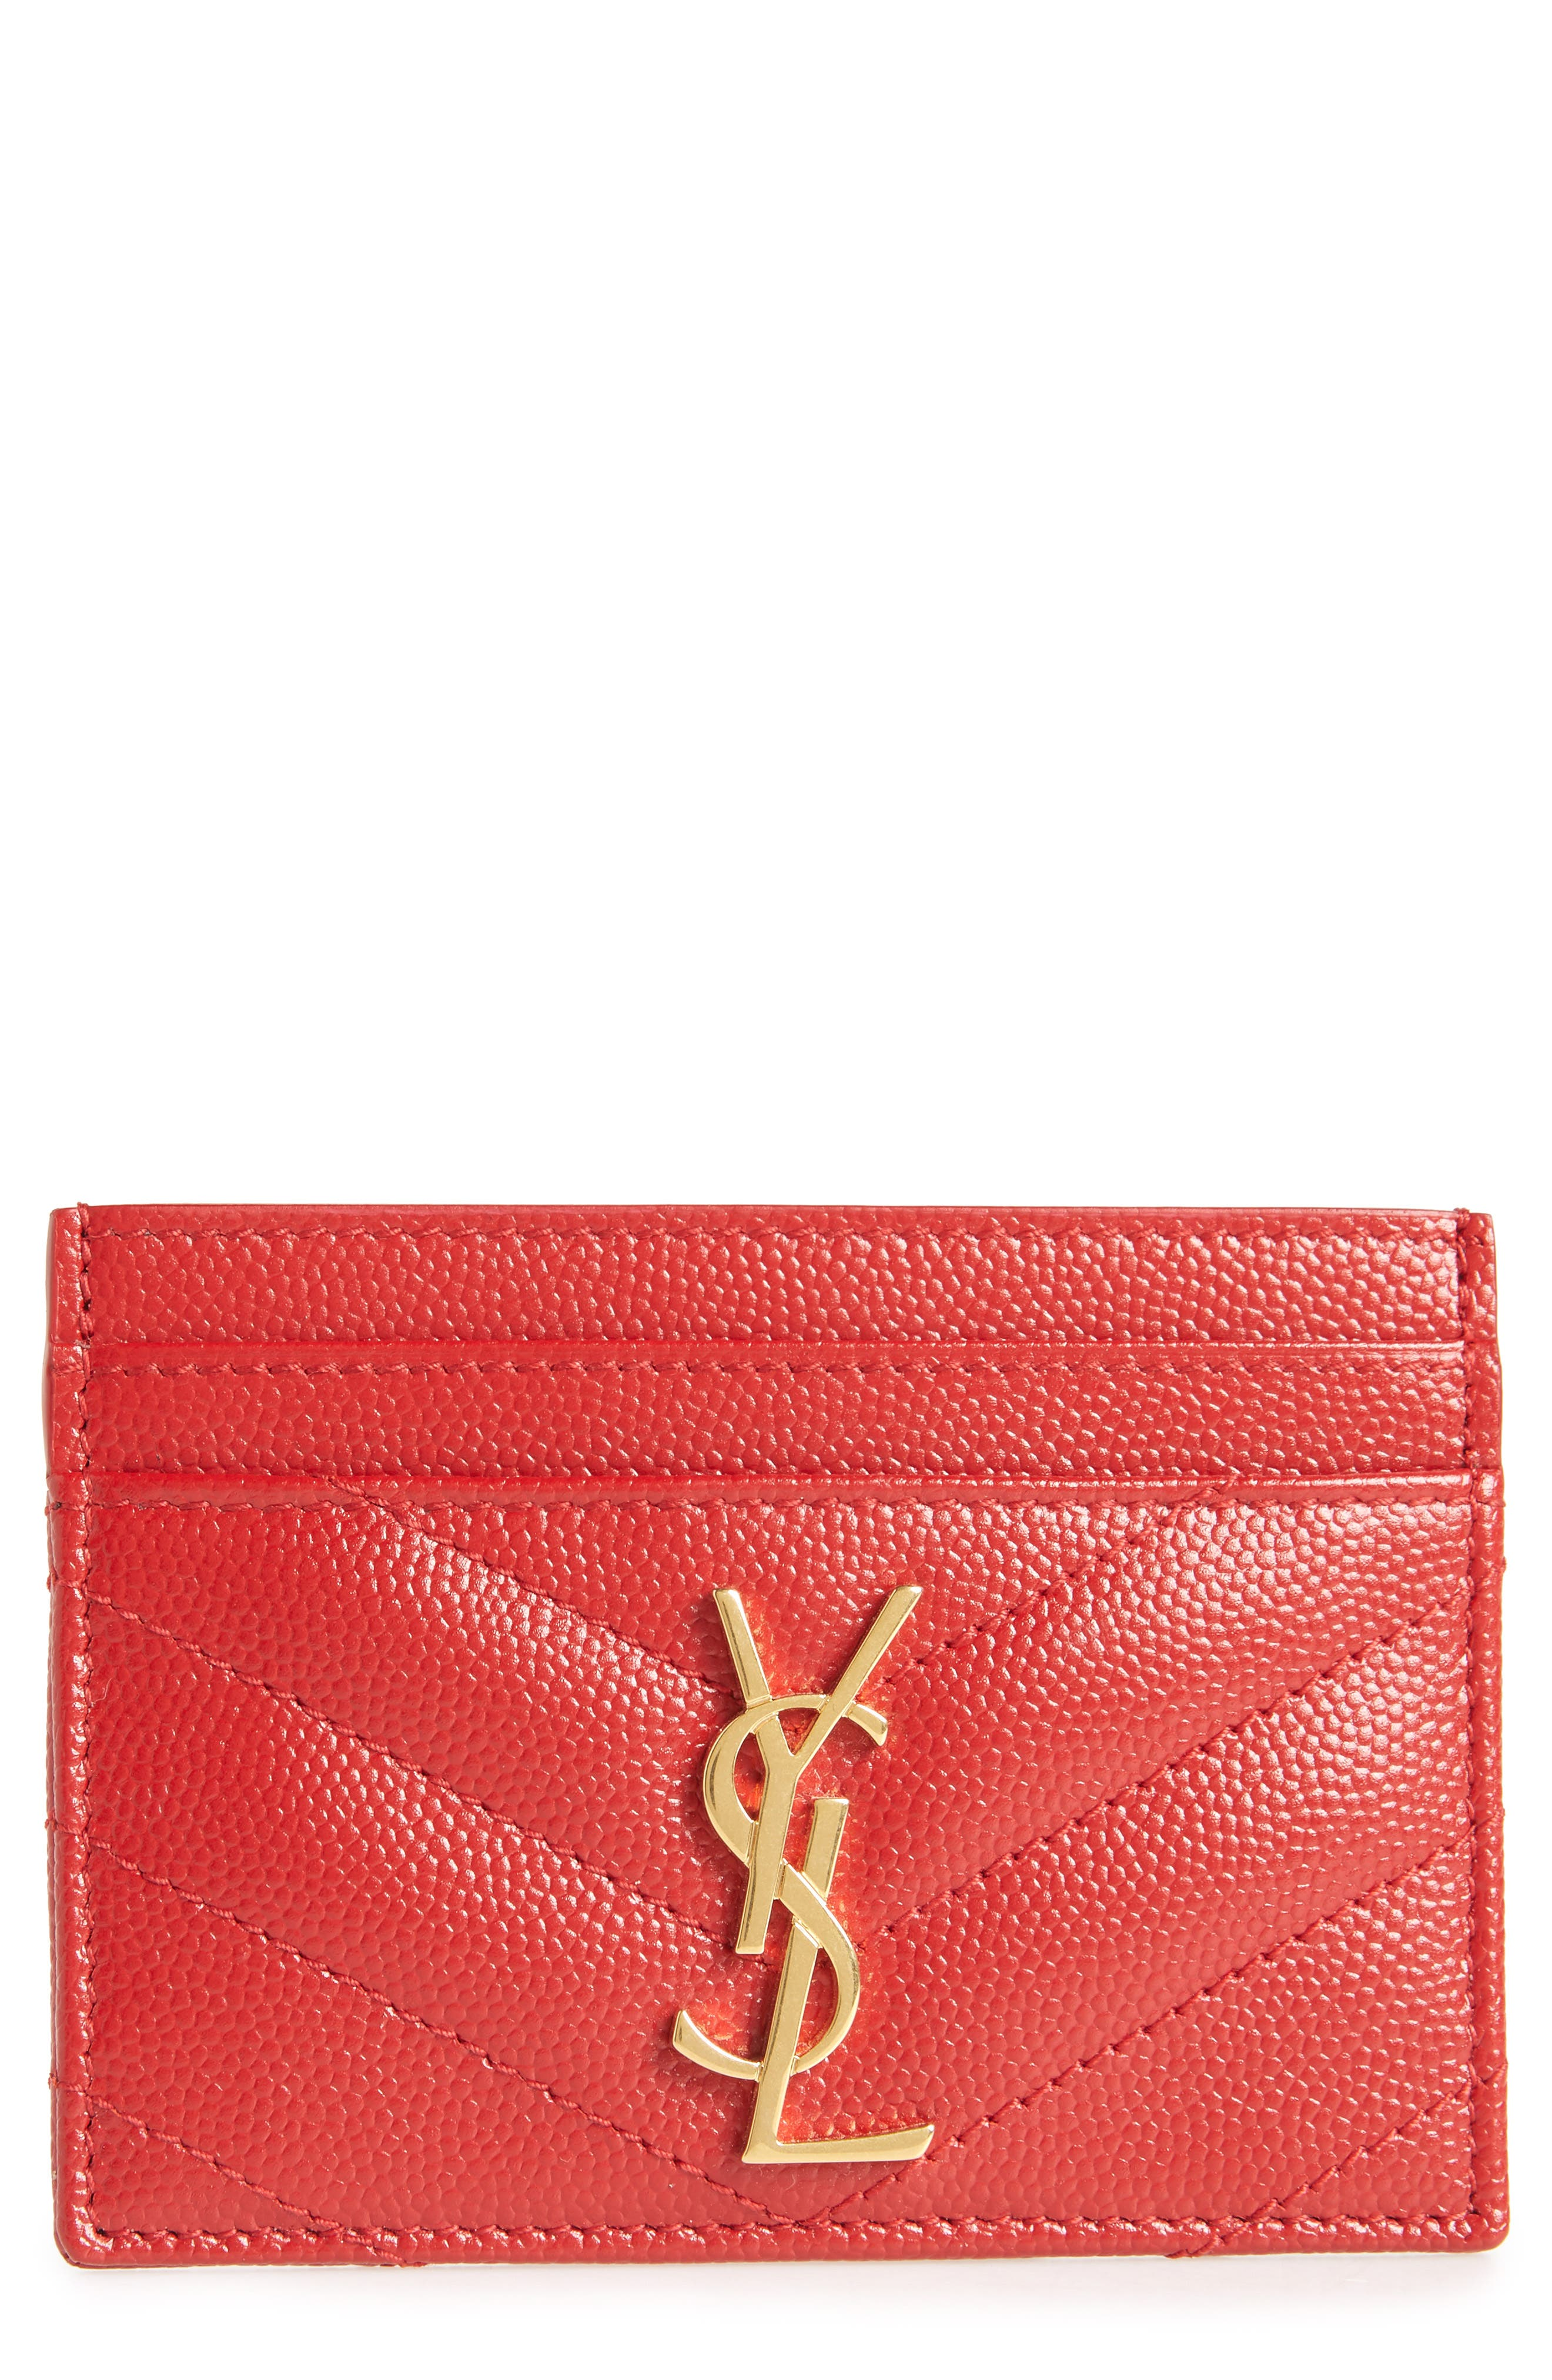 Monogram Quilted Leather Credit Card Case,                             Main thumbnail 1, color,                             ROUGE EROS